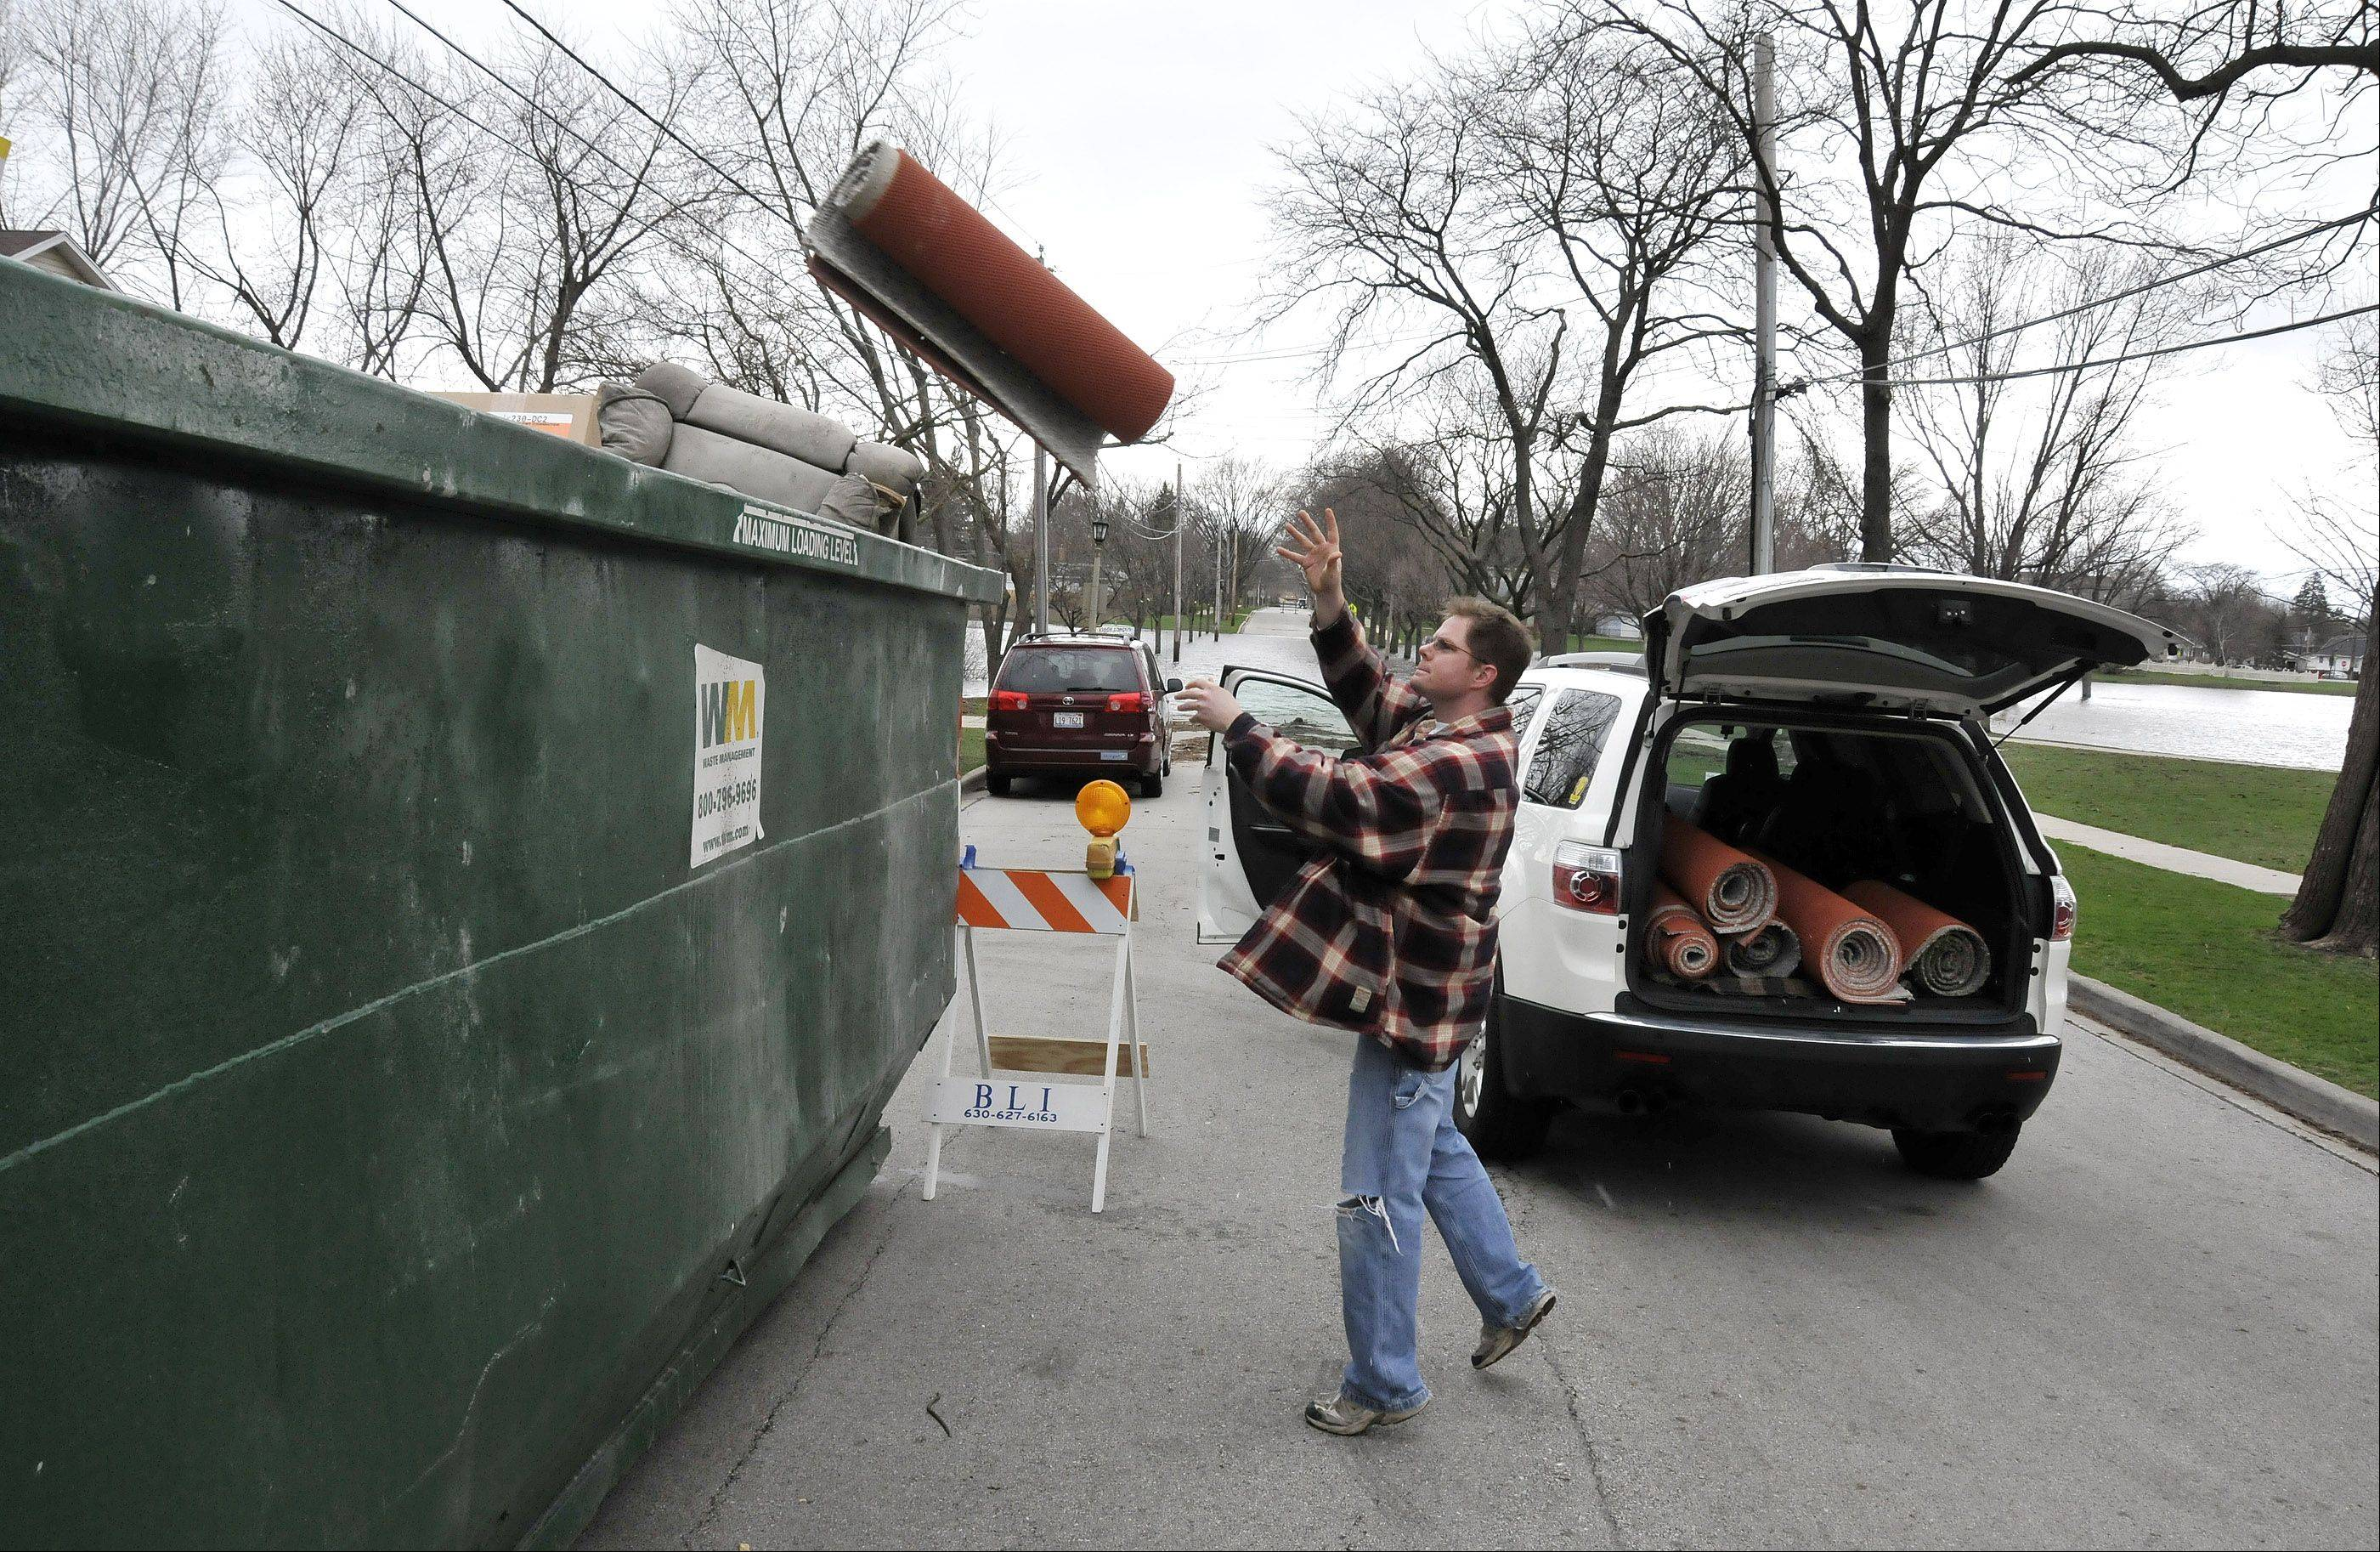 Terrace View Park in Lombard is still flooded over the banks, onto surrounding streets and into surrounding basements. Greenfield Avenue by the park is one of several locations in Lombard where large garbage bins have been placed to assist residents in disposing of ruined items. Kevin Reinheimer gets rid of his damaged carpet.